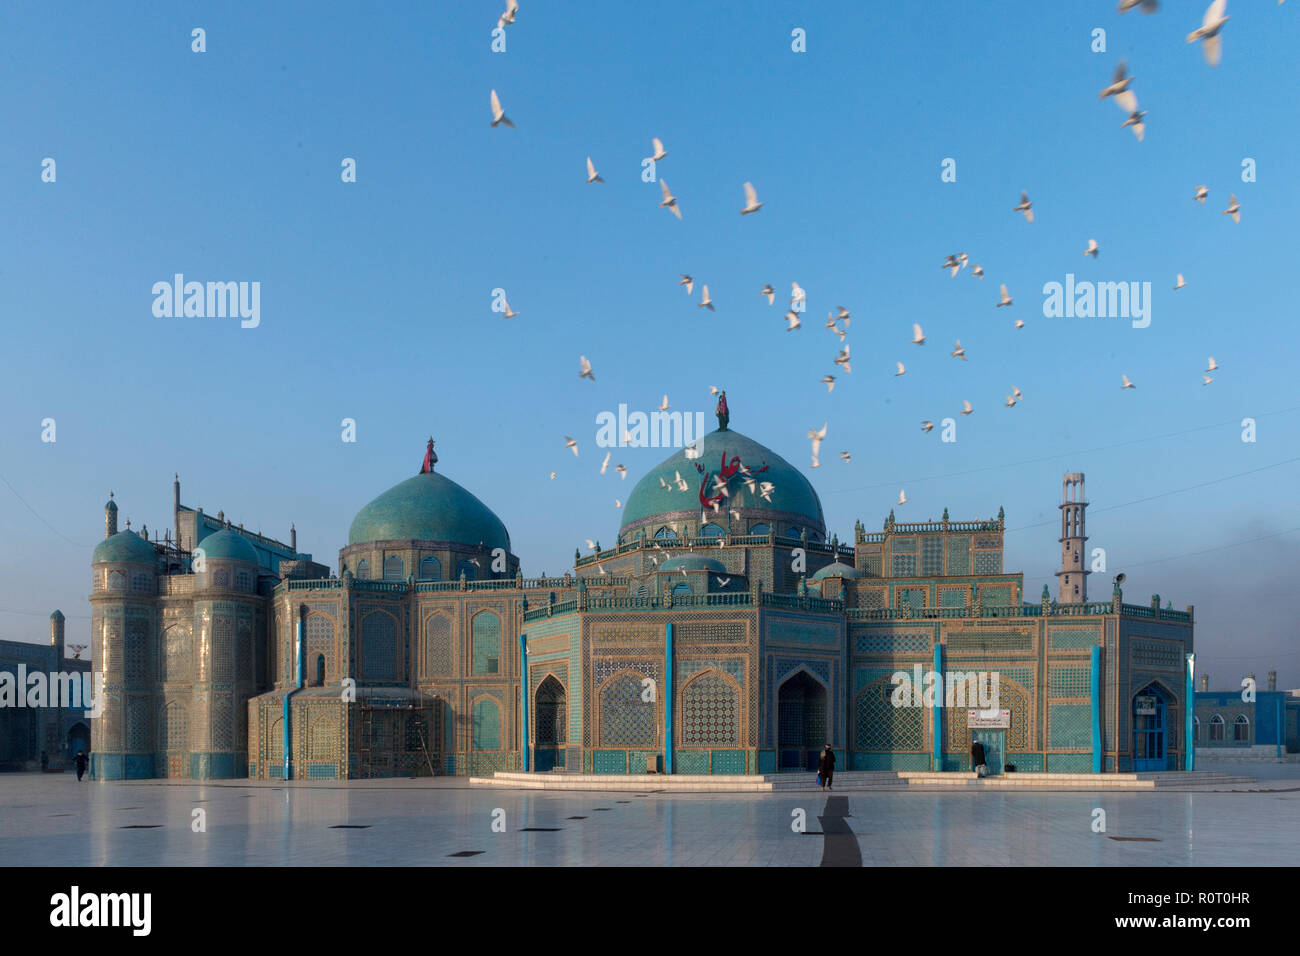 Architecture Of The Shrine Of Hazrat Ali, also called the Blue Mosque, Mazar-e Sharif, Afghanistan Stock Photo